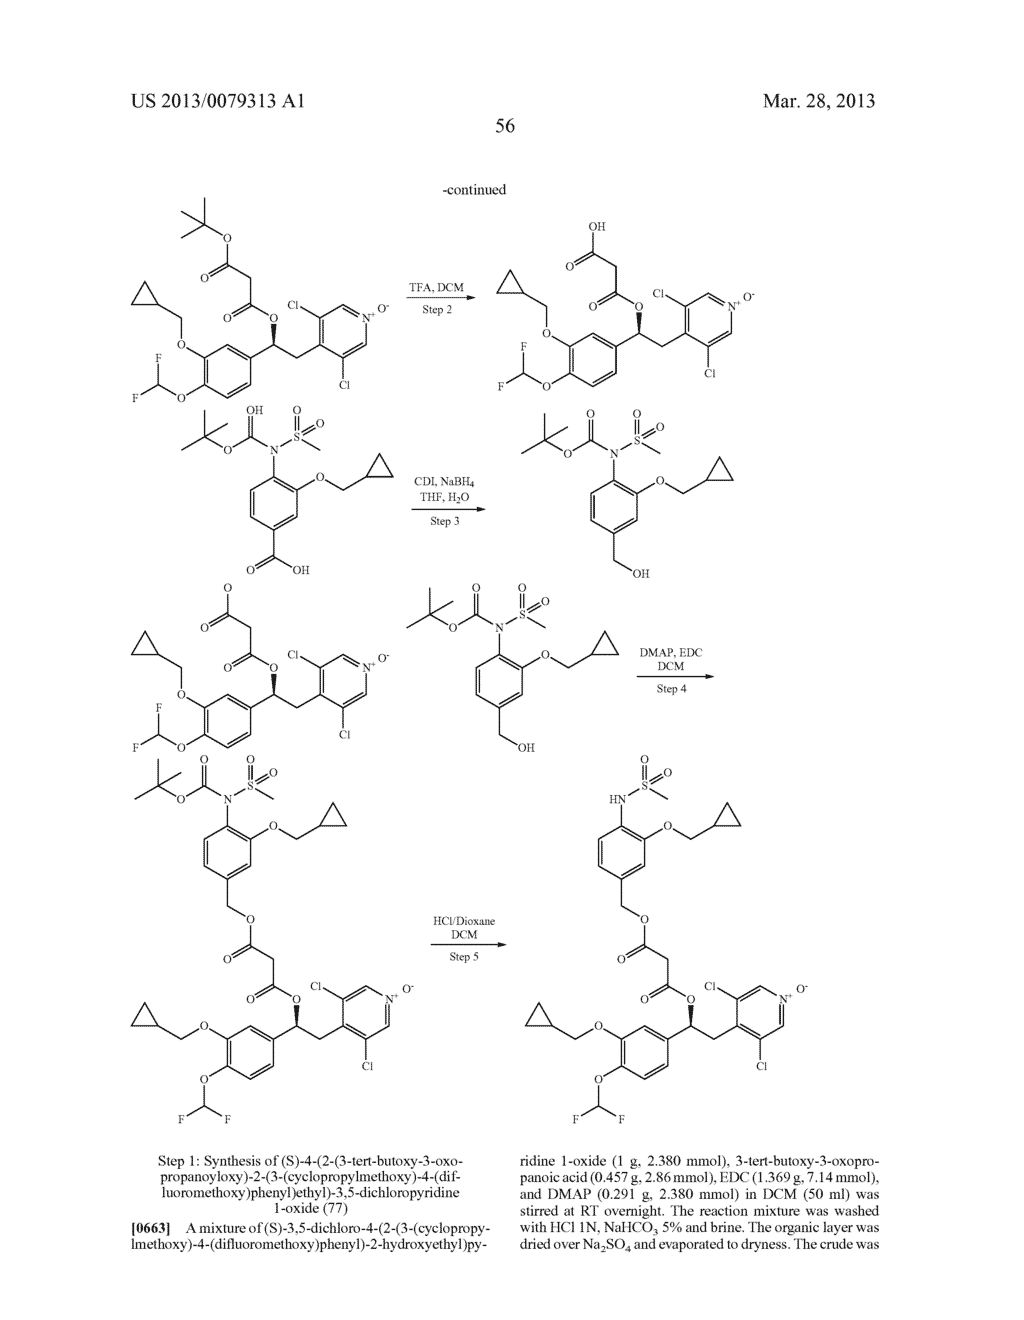 DERIVATIVES OF 1-PHENYL-2-PYRIDINYL ALKYL ALCOHOLS AS PHOSPHODIESTERASE     INHIBITORS - diagram, schematic, and image 57